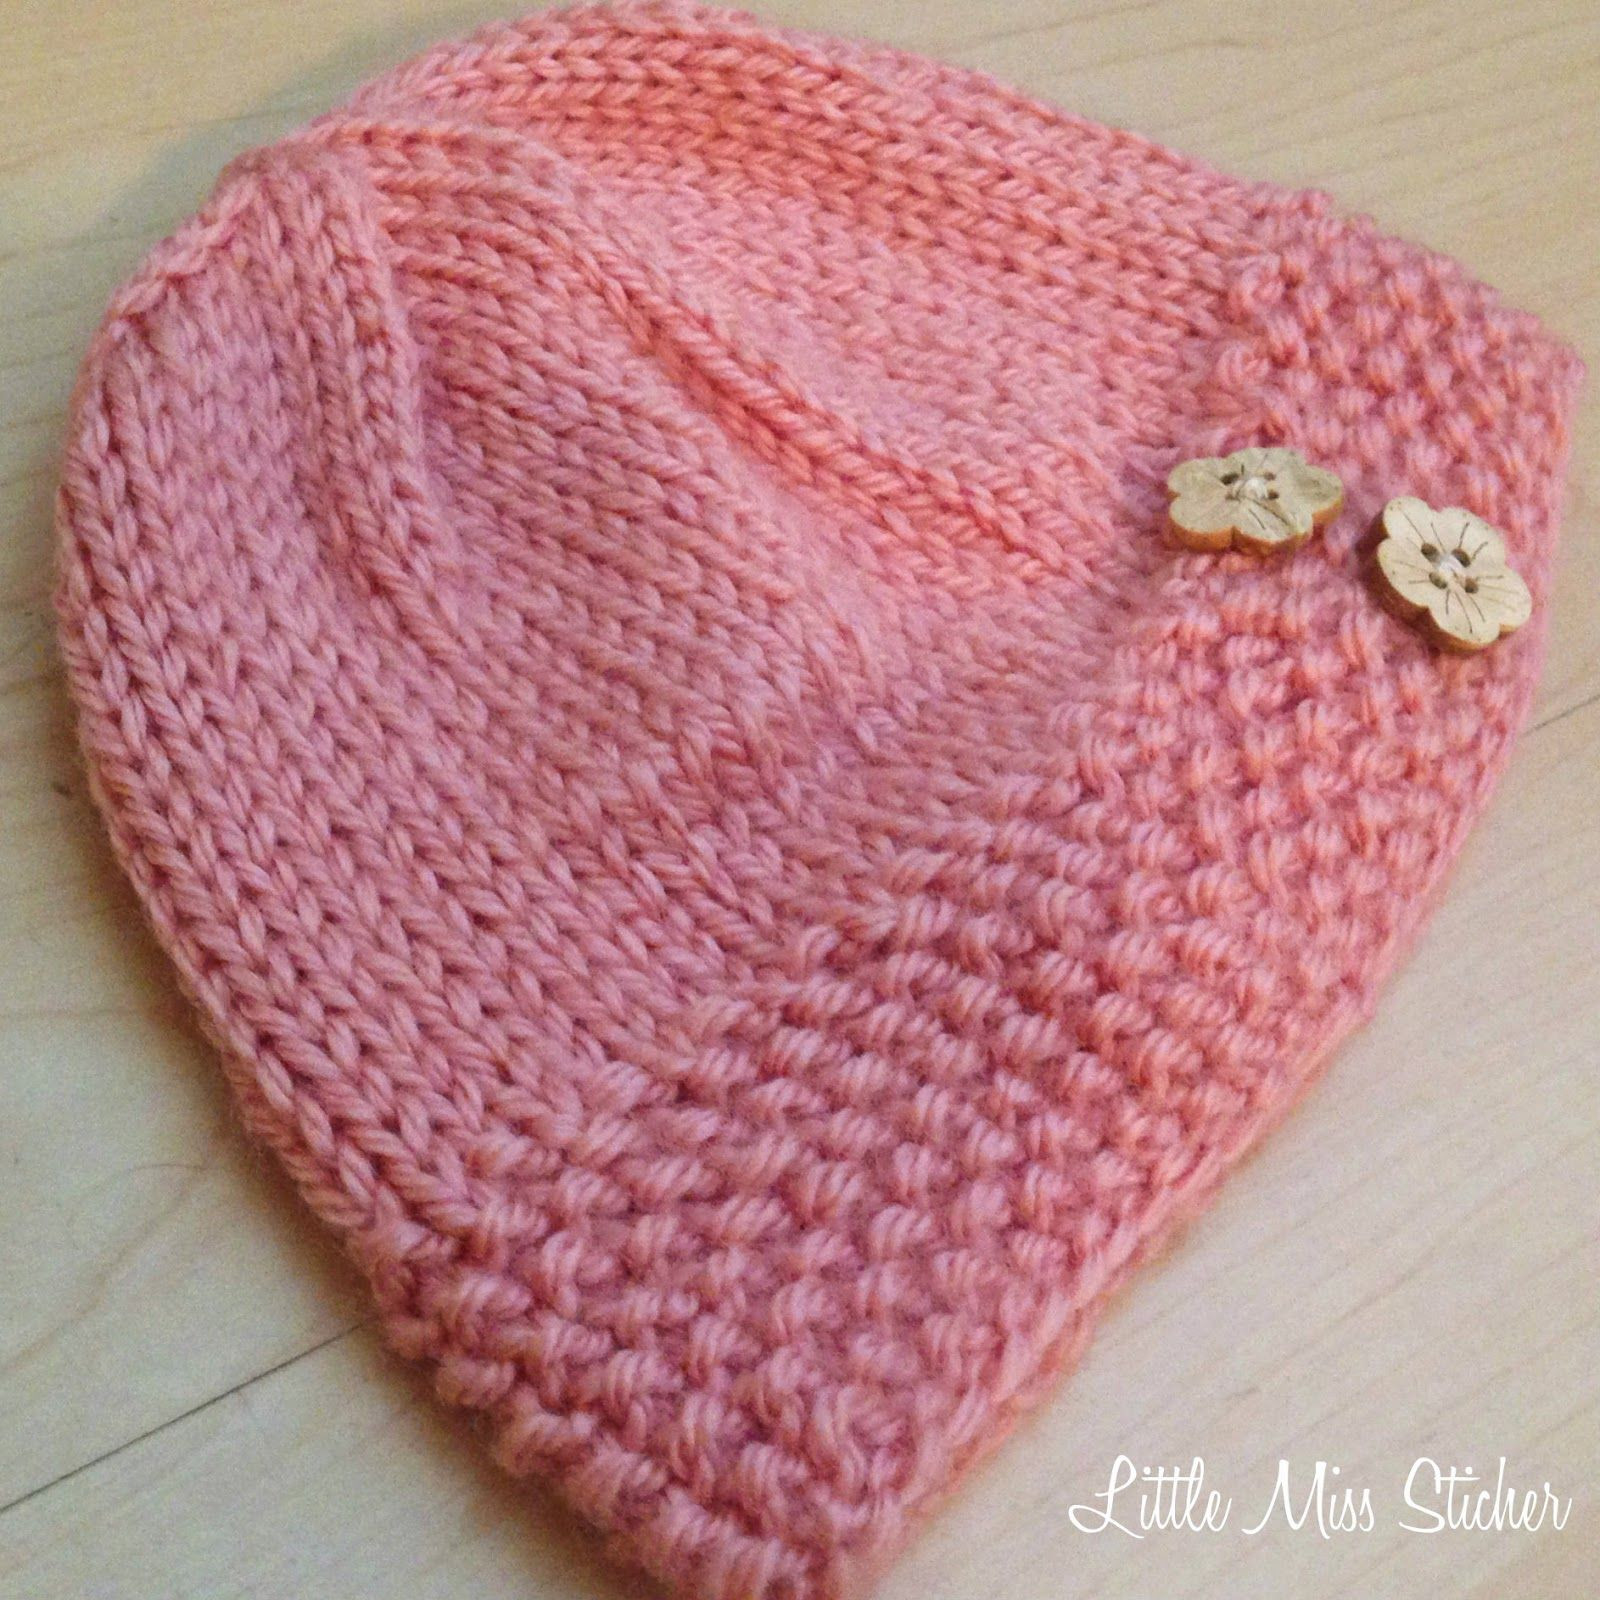 Free Knitting Patterns for Baby Hats Awesome Adorable Baby Hat Pattern It S Free too Knitting Baby Of Perfect 44 Models Free Knitting Patterns for Baby Hats